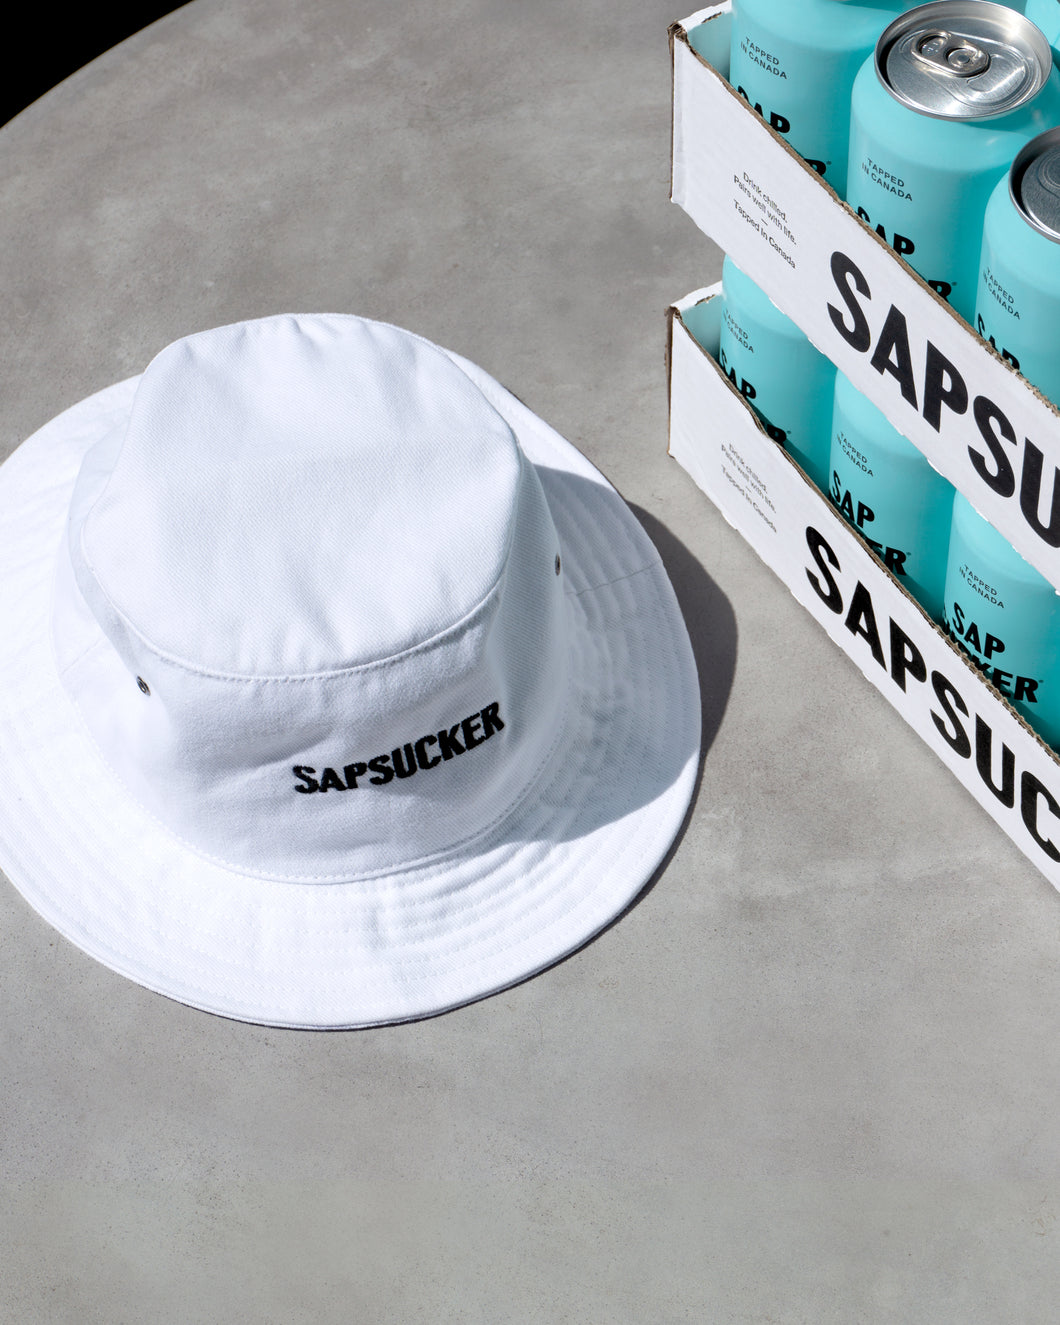 Sapsucker Bucket Hat